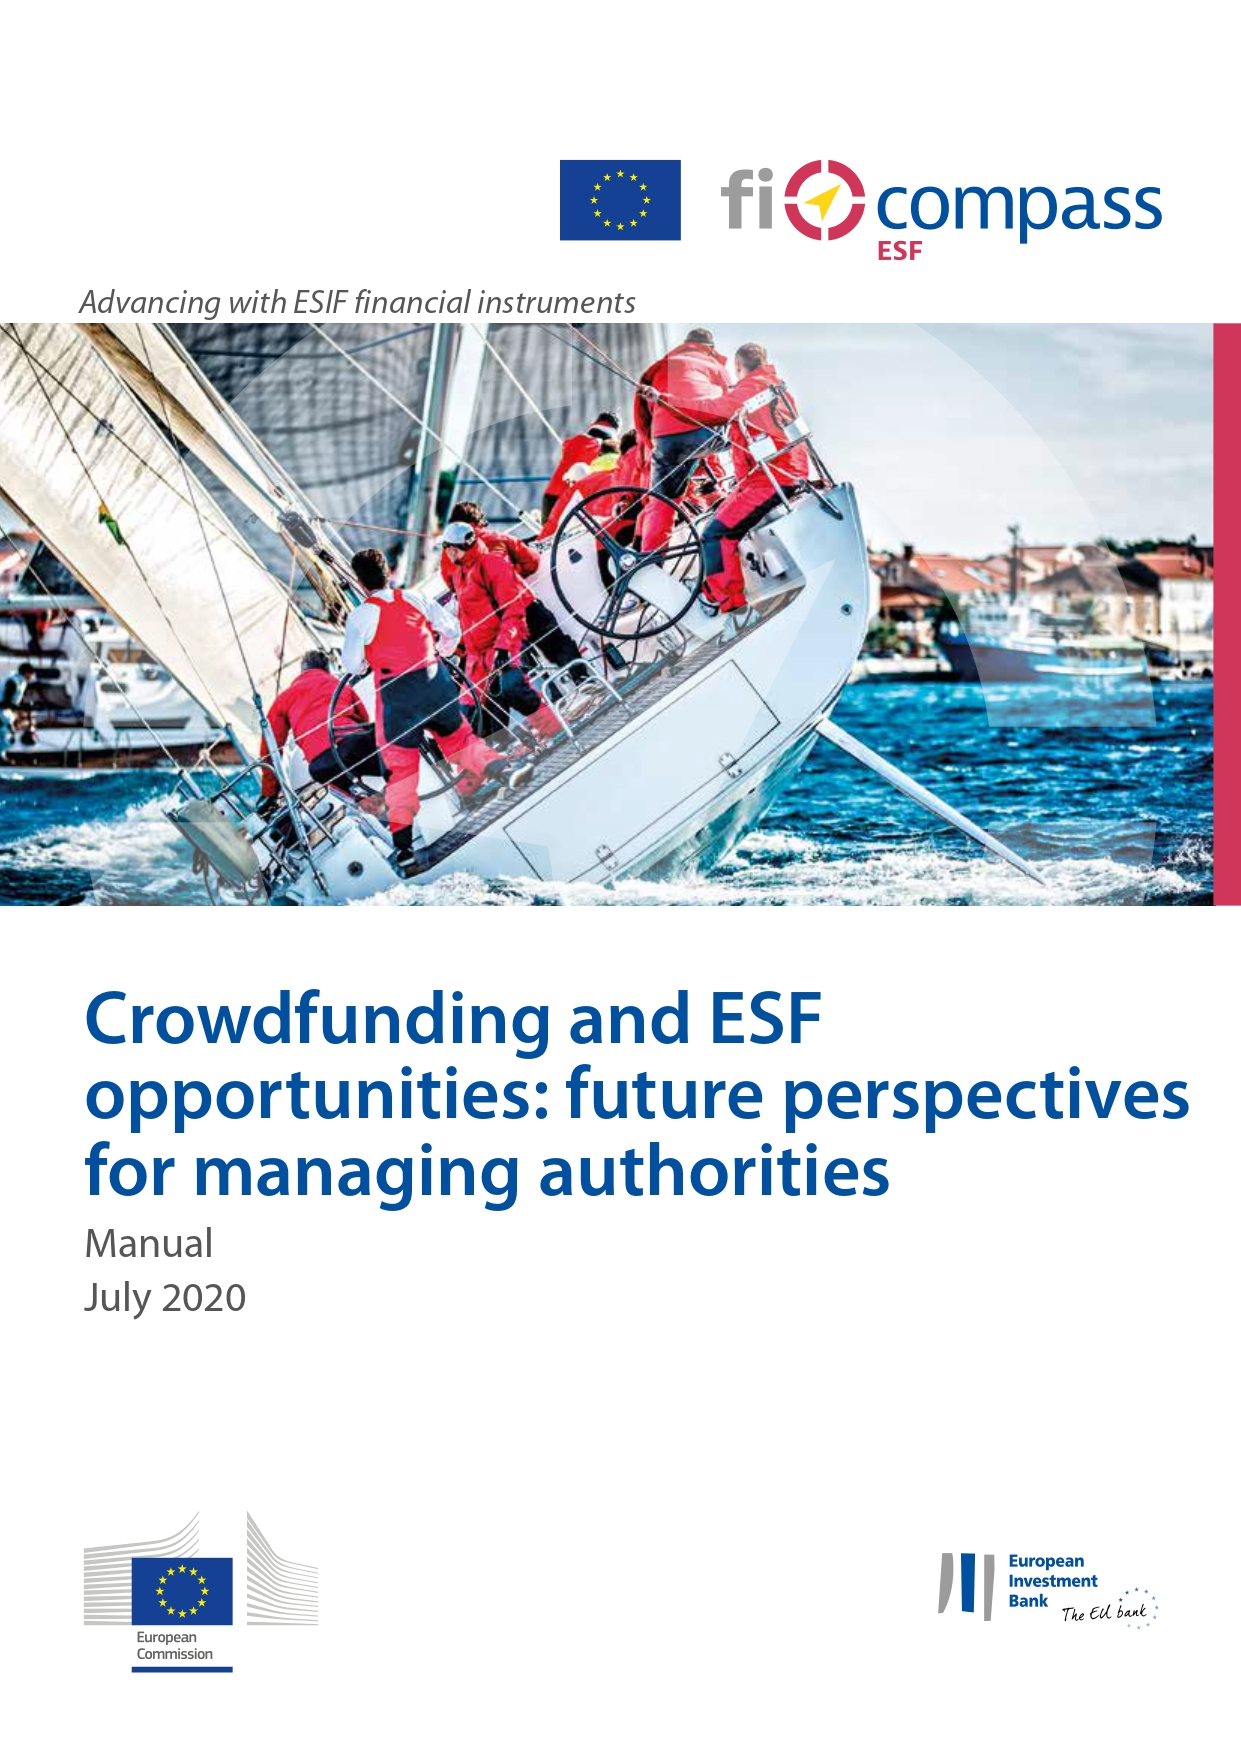 Crowdfunding and ESF opportunities: future perspectives for managing authorities